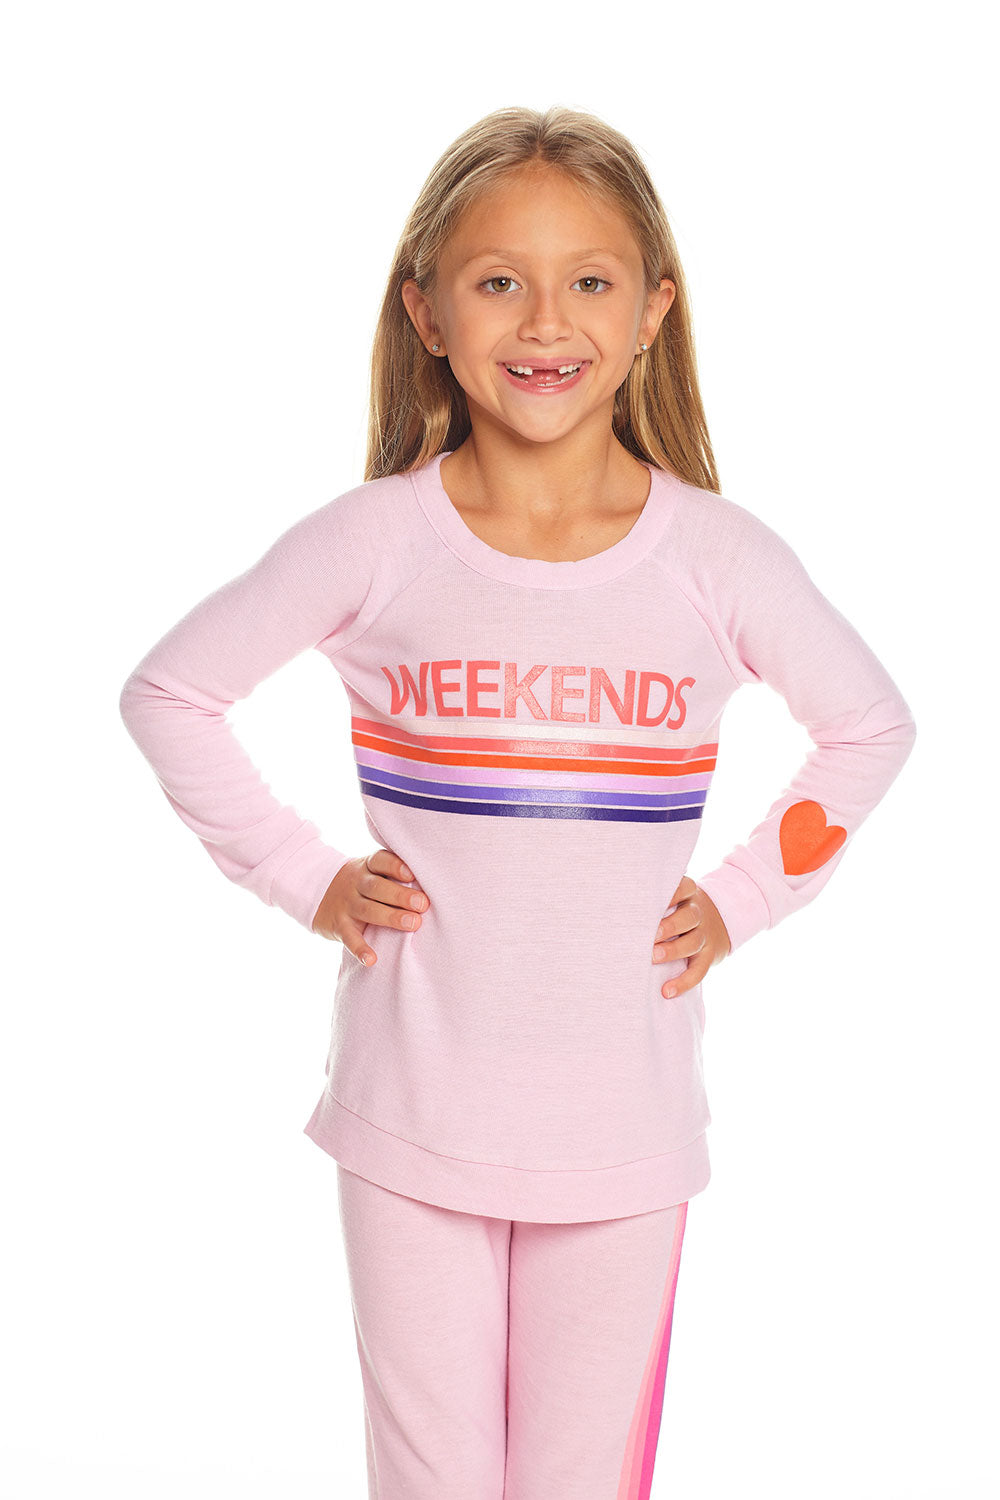 Weekends GIRLS chaserbrand4.myshopify.com